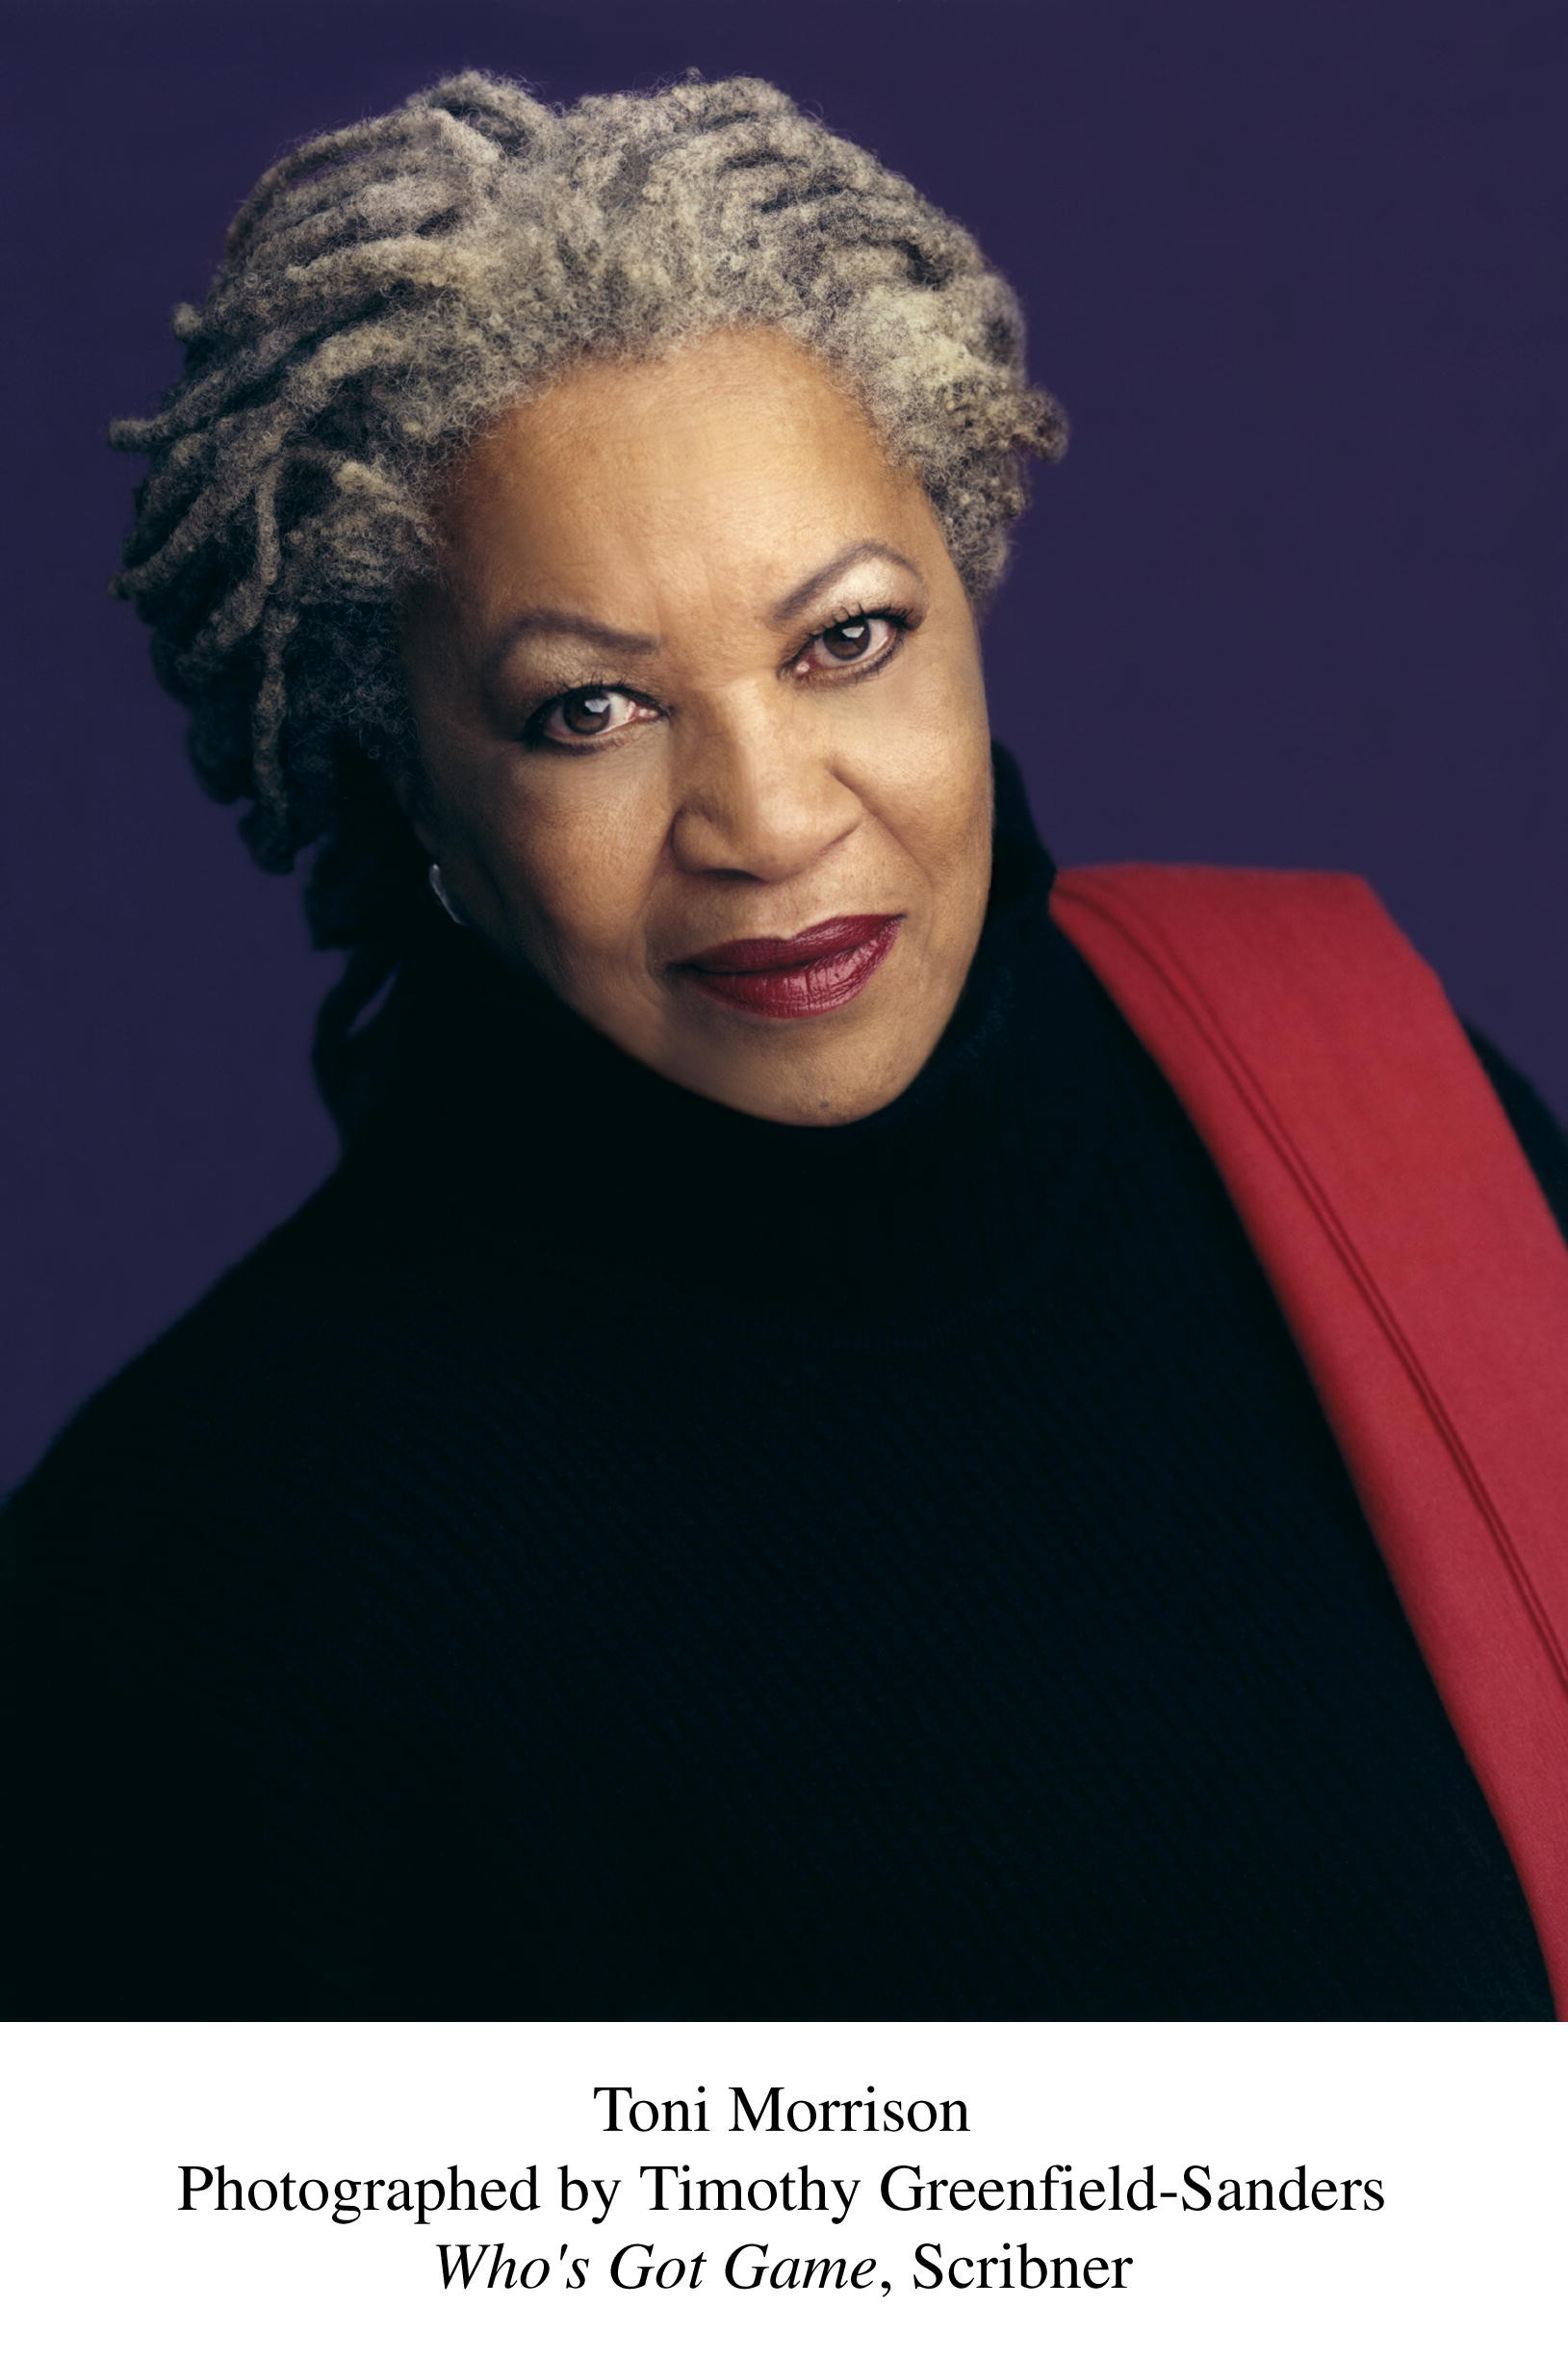 strangers by toni morrison essay This is a great essay, straight forward i think you actually took toni morrison's passage a little deeper than i did considering the way you mentioned.